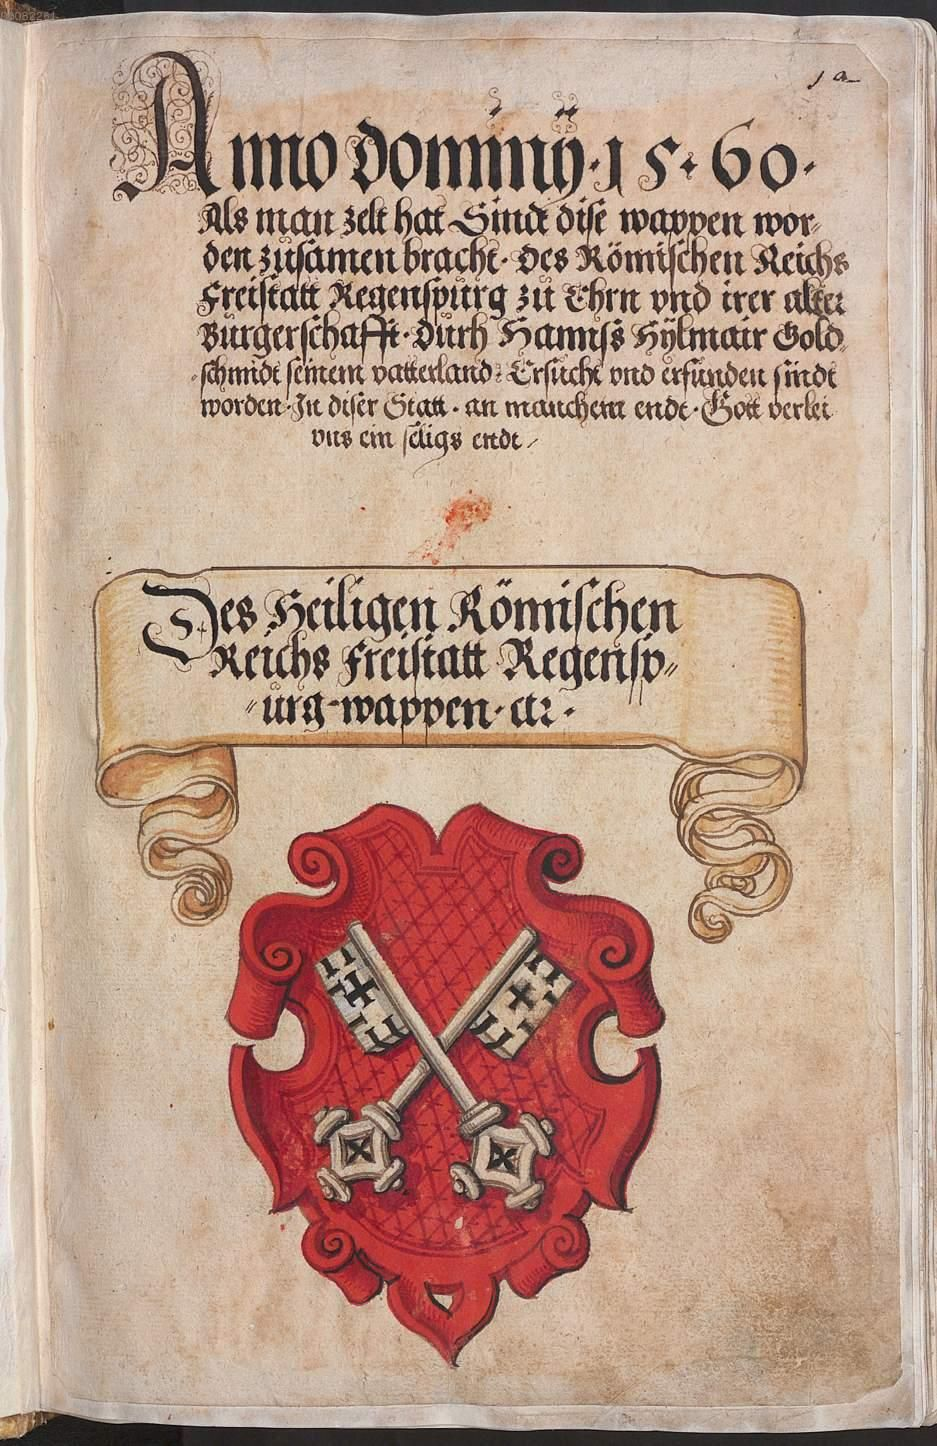 Image 00007 In 2020 Coat Of Arms Heraldry Medieval World